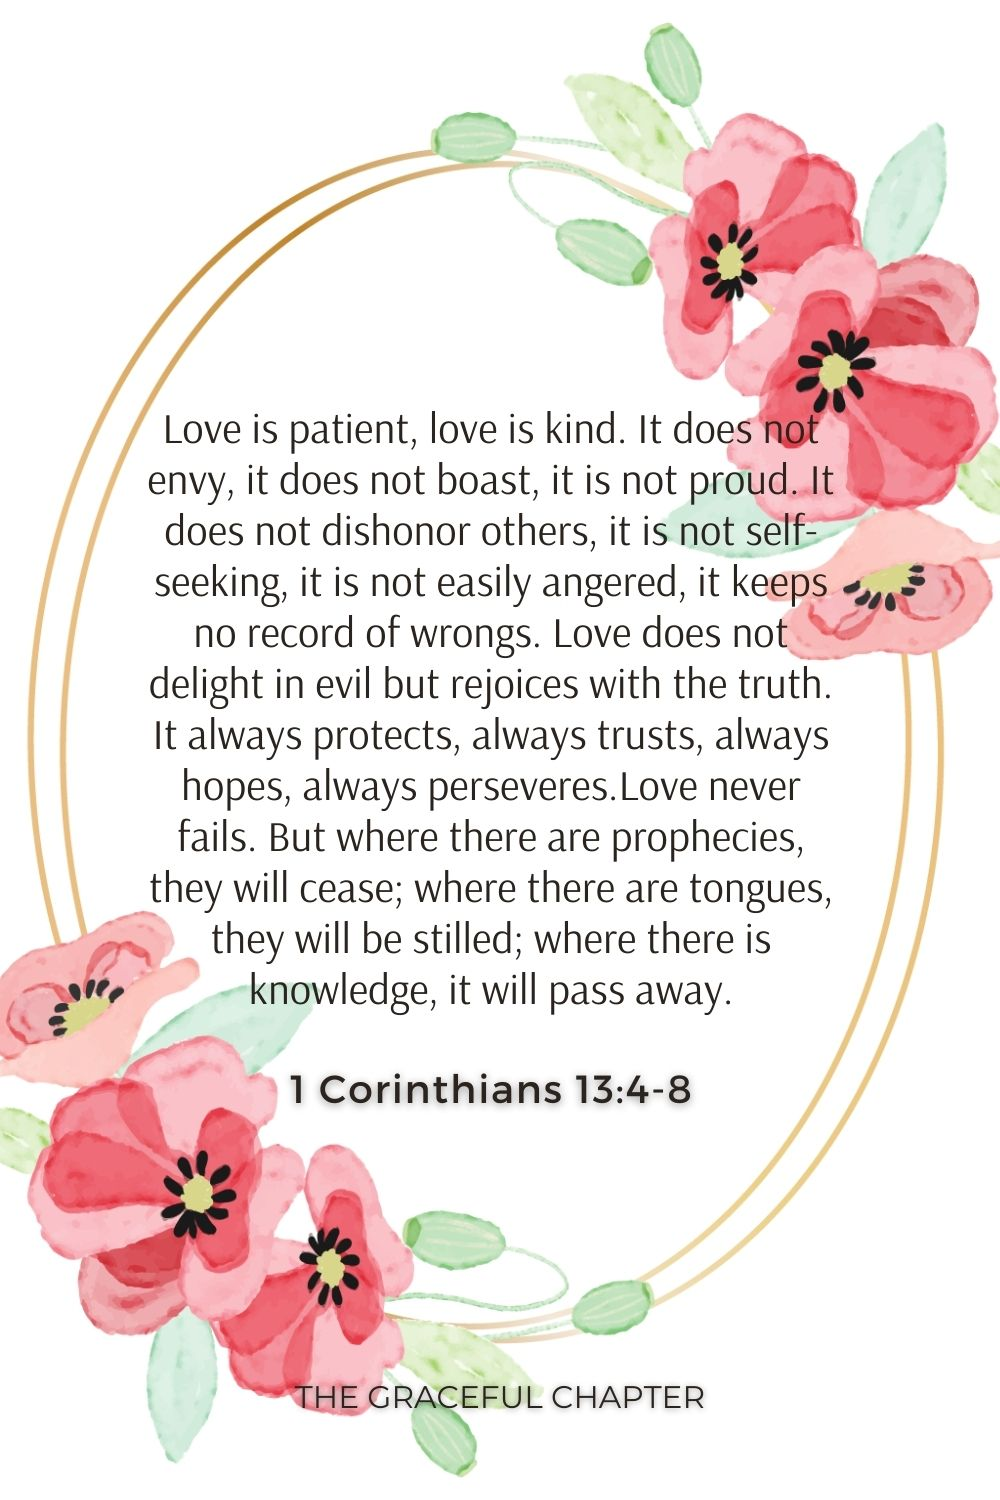 Love is patient, love is kind. It does not envy, it does not boast, it is not proud. It does not dishonor others, it is not self-seeking, it is not easily angered, it keeps no record of wrongs. Love does not delight in evil but rejoices with the truth. It always protects, always trusts, always hopes, always perseveres.Love never fails. But where there are prophecies, they will cease; where there are tongues, they will be stilled; where there is knowledge, it will pass away. 1 Corinthians 13:4-8